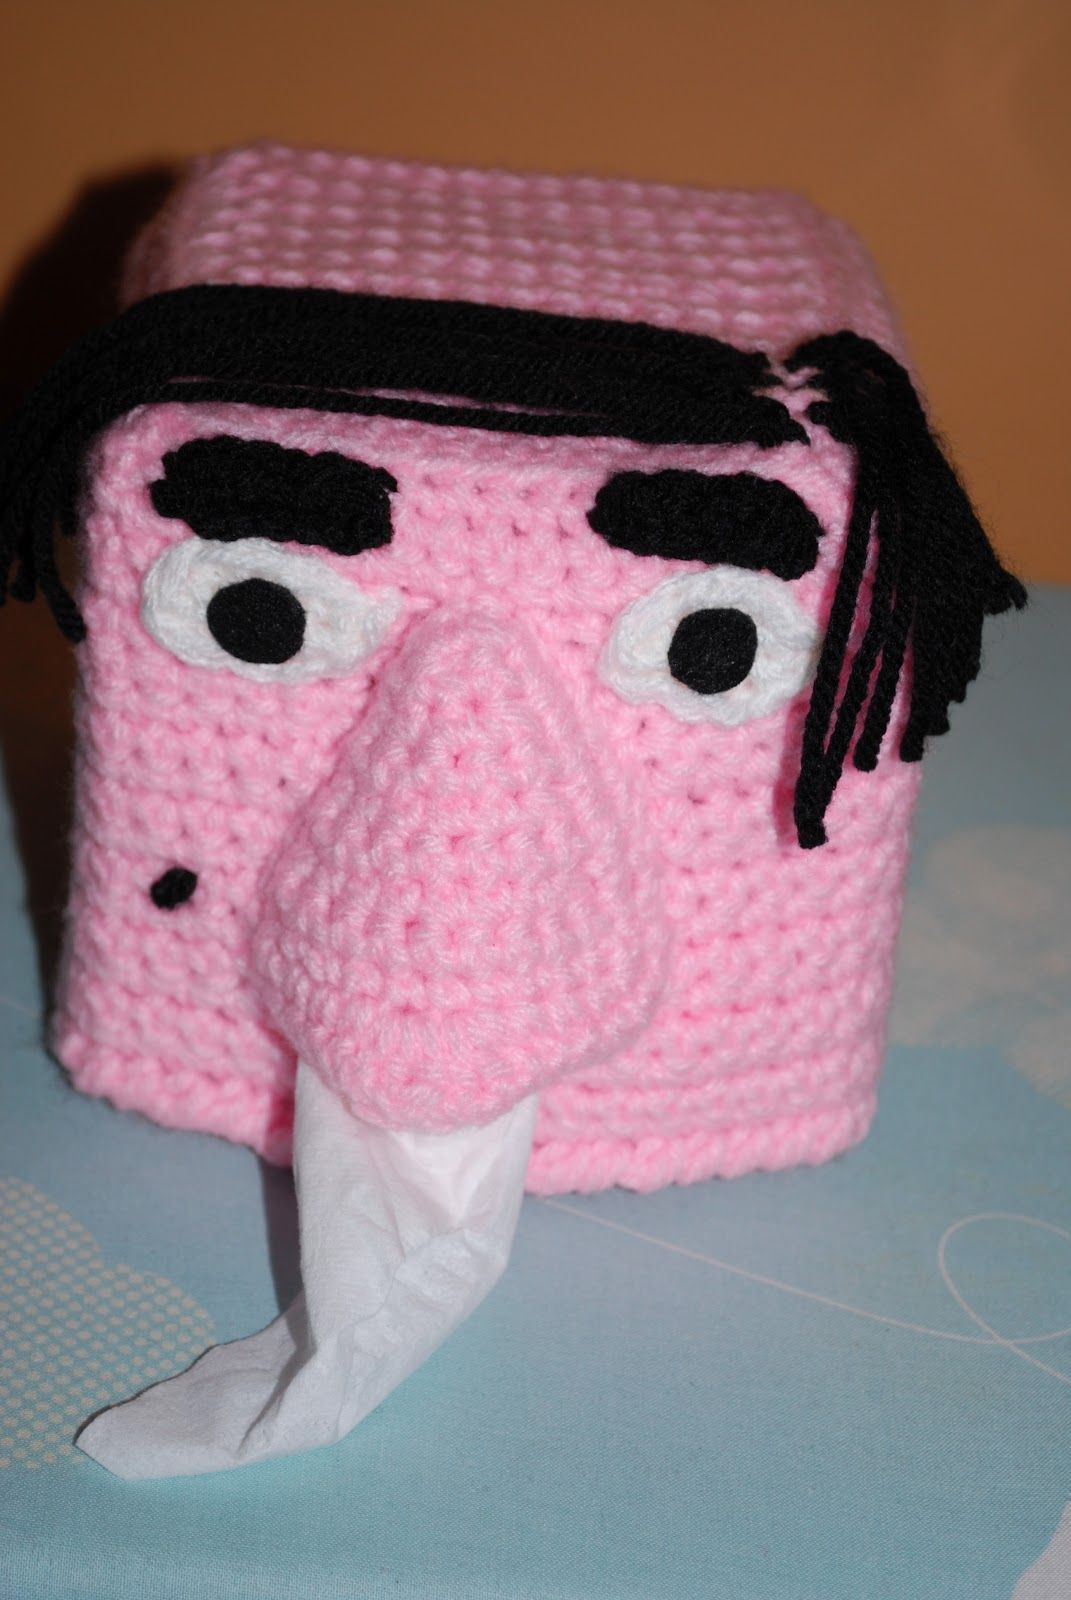 Crochet Tissue Box Face - free pattern.You either find this funny or ...